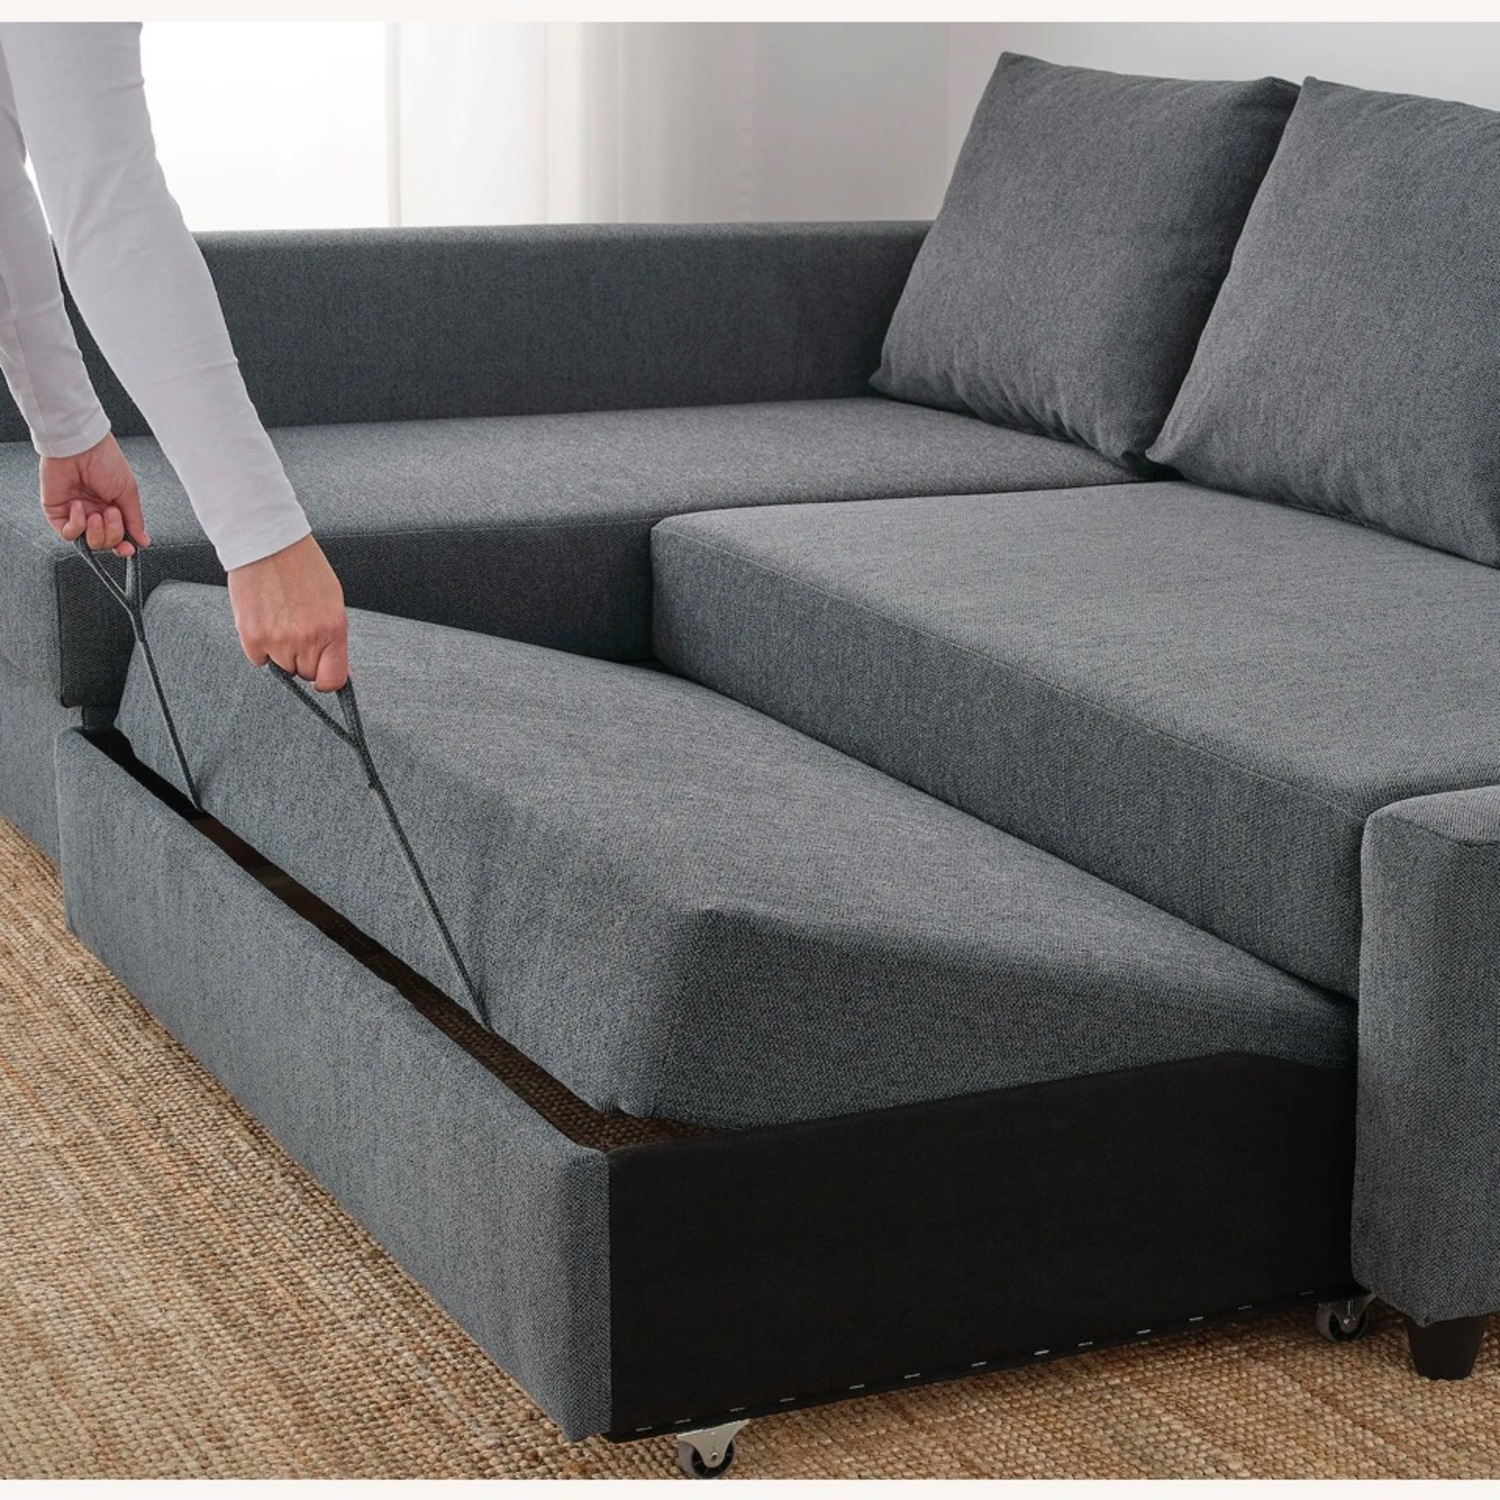 The Perfect Lounging Sectional Couch - image-3